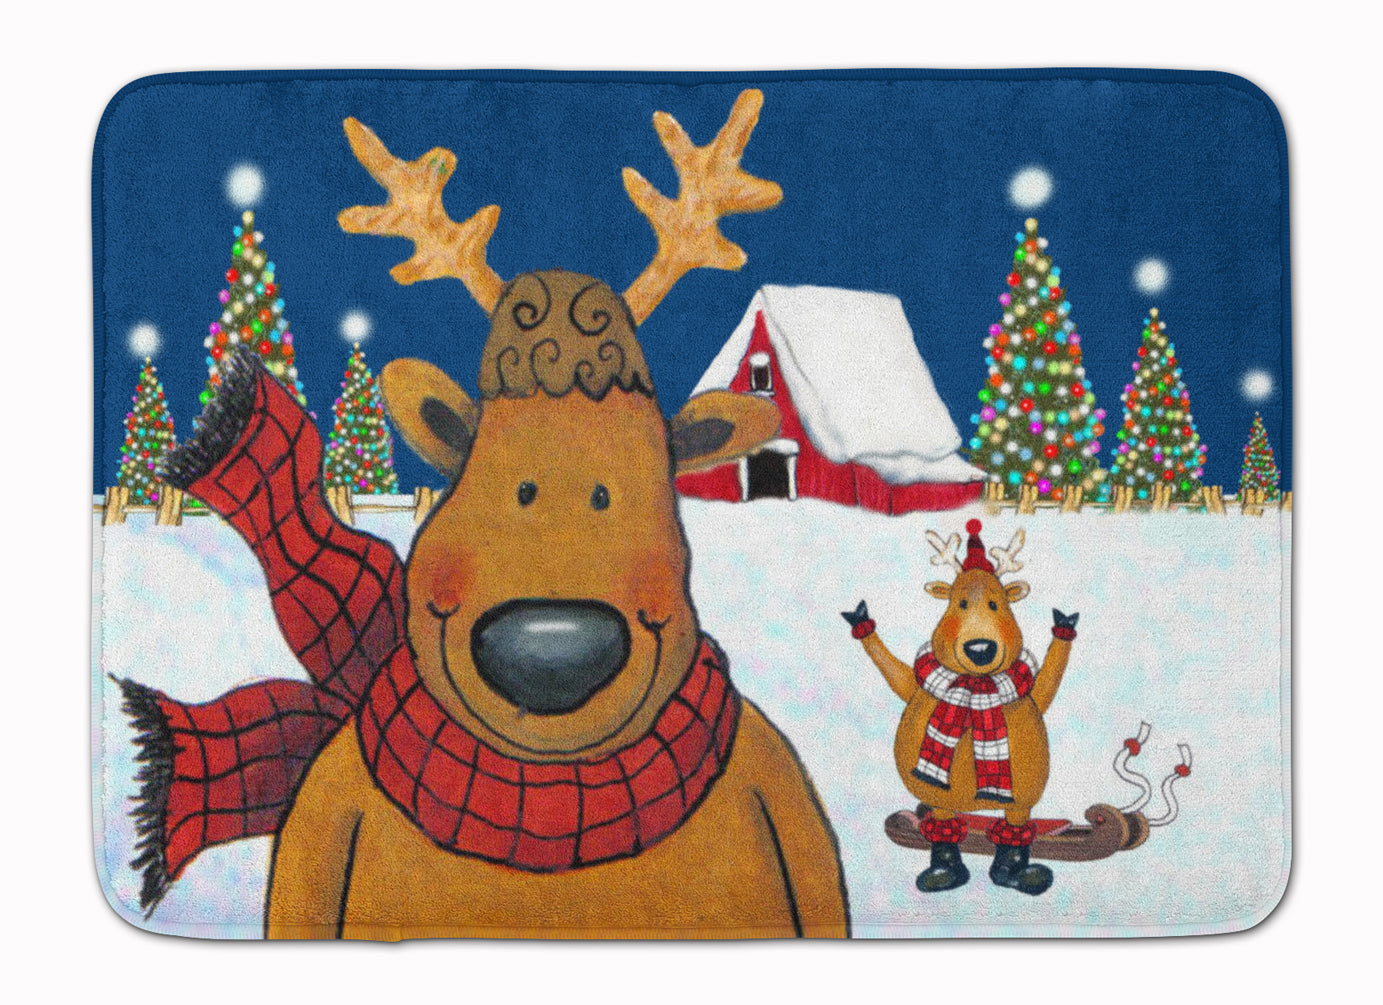 The Tree Famers Reindeer Christmas Machine Washable Memory Foam Mat PJC1088RUG by Caroline's Treasures